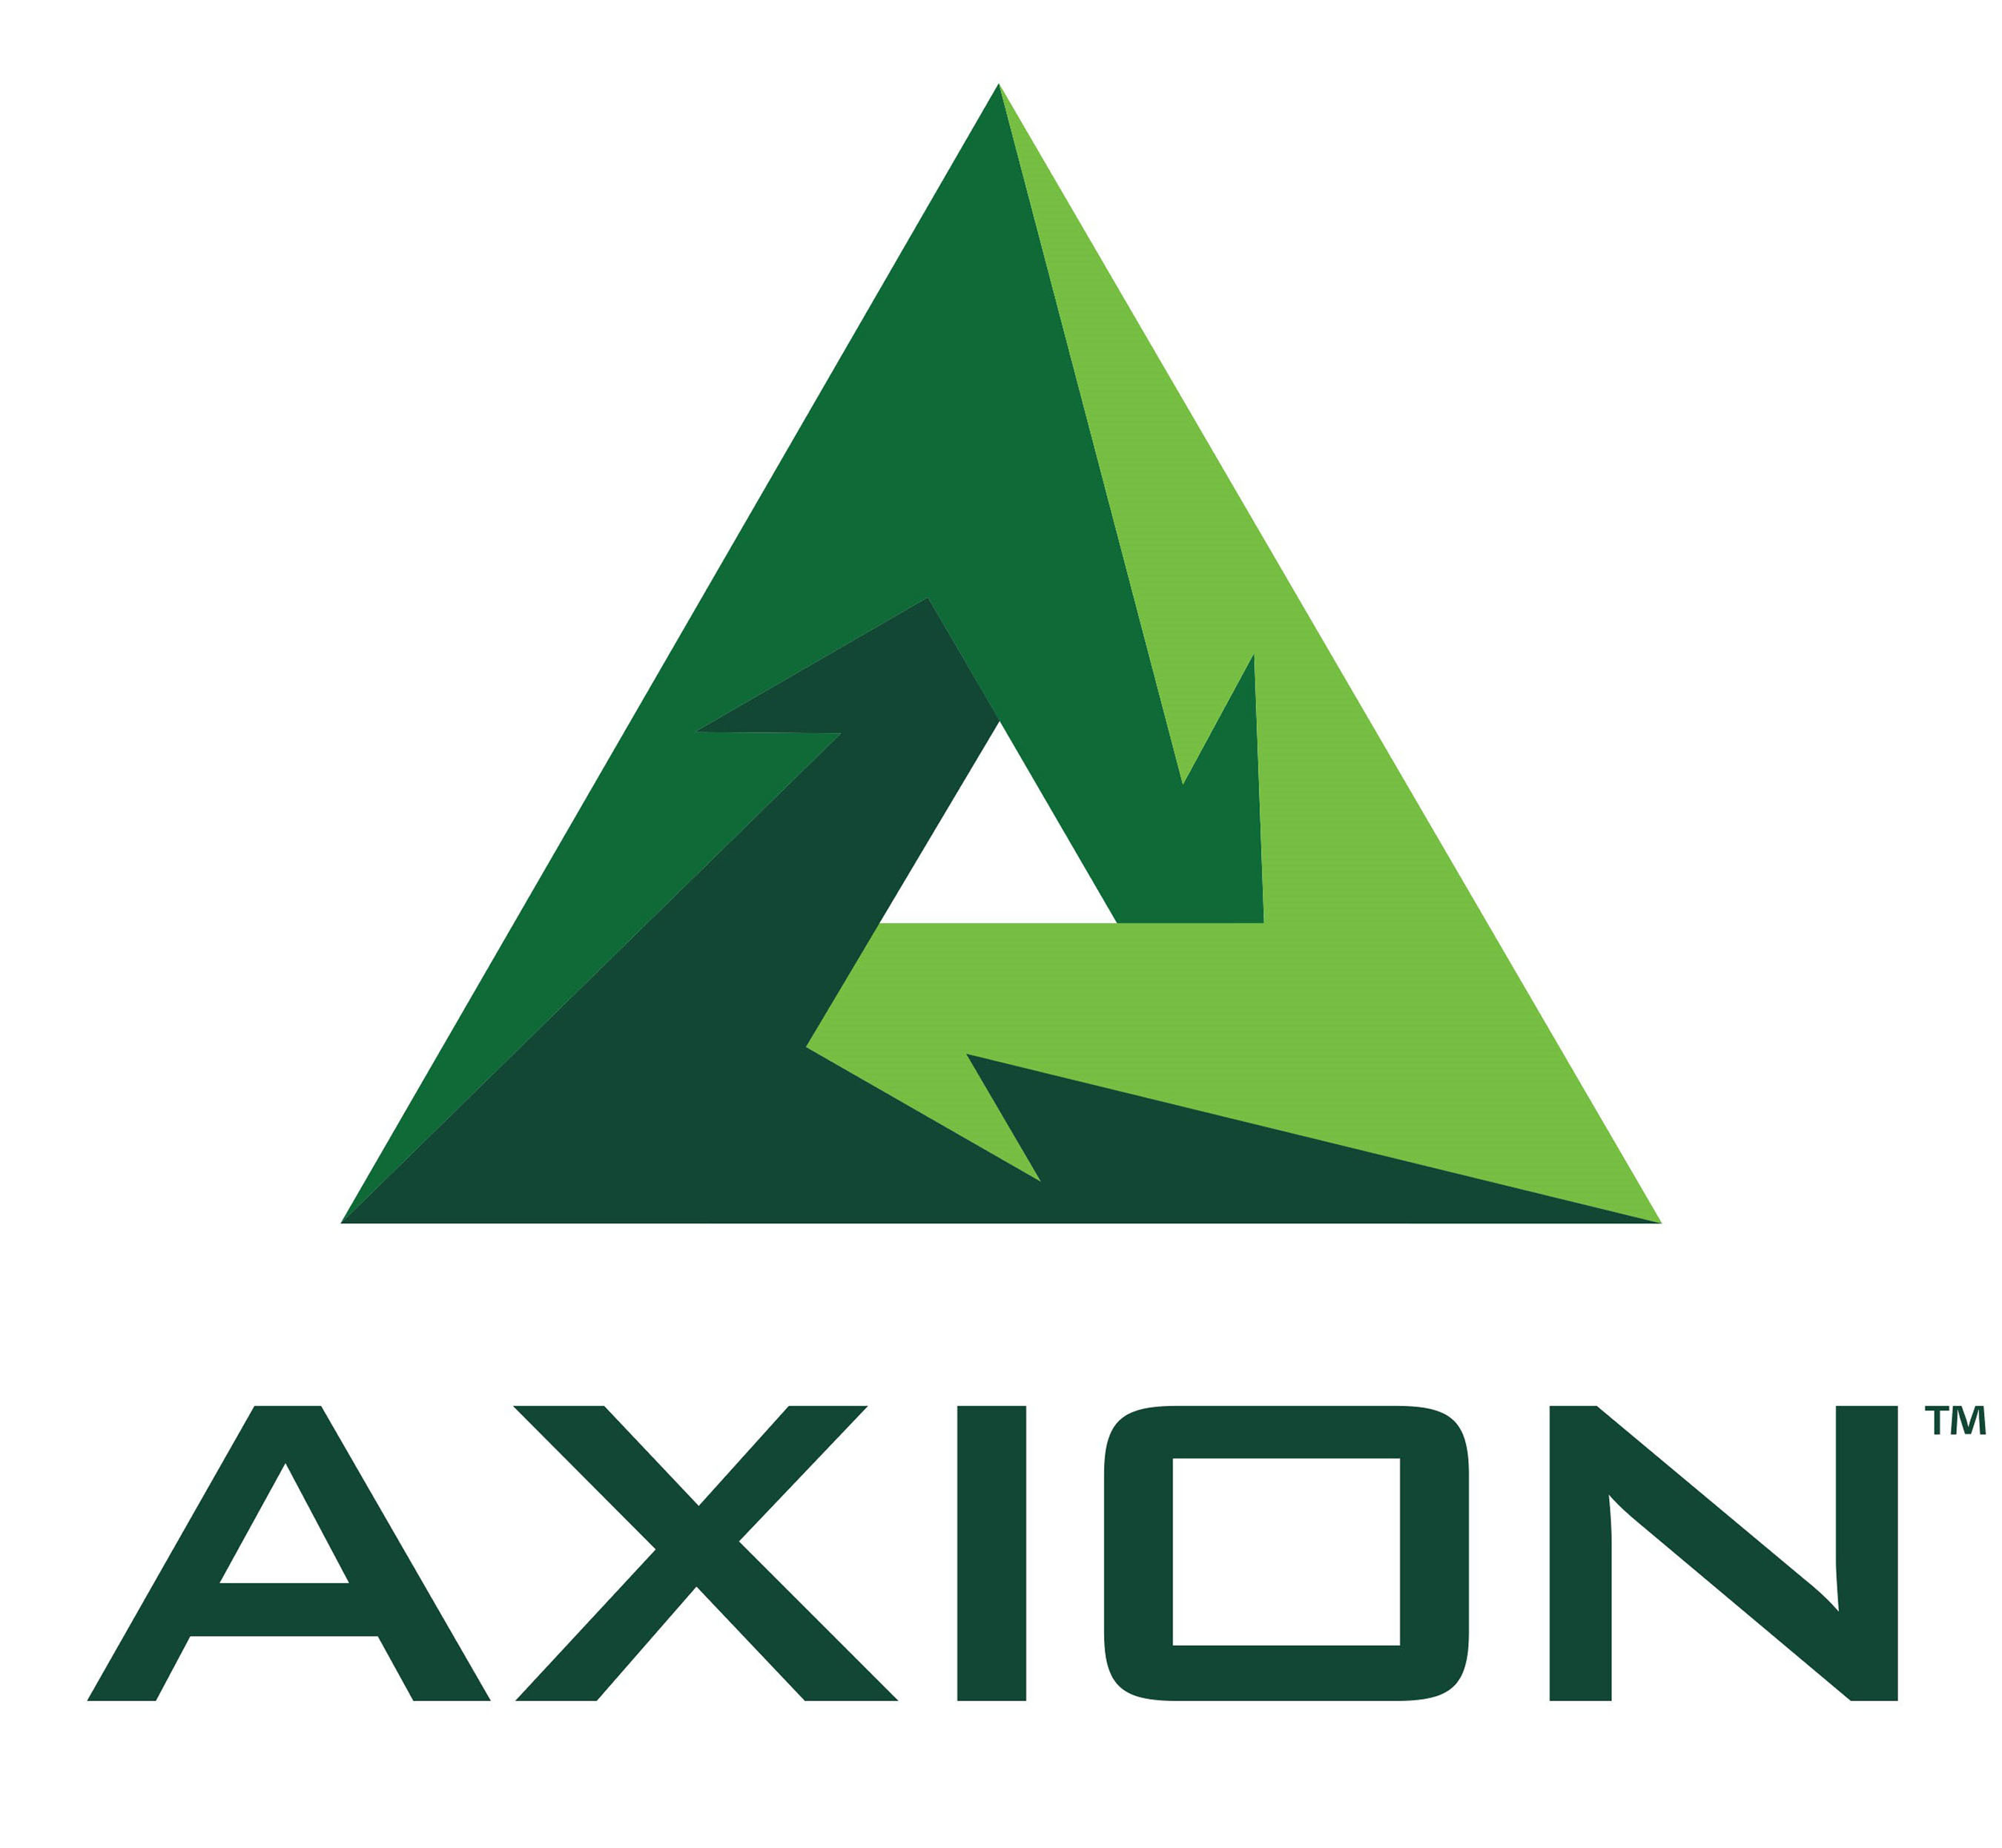 AXION Signs Superior Energy Resources to a Master Distribution Agreement for Sale of Laminated Mats